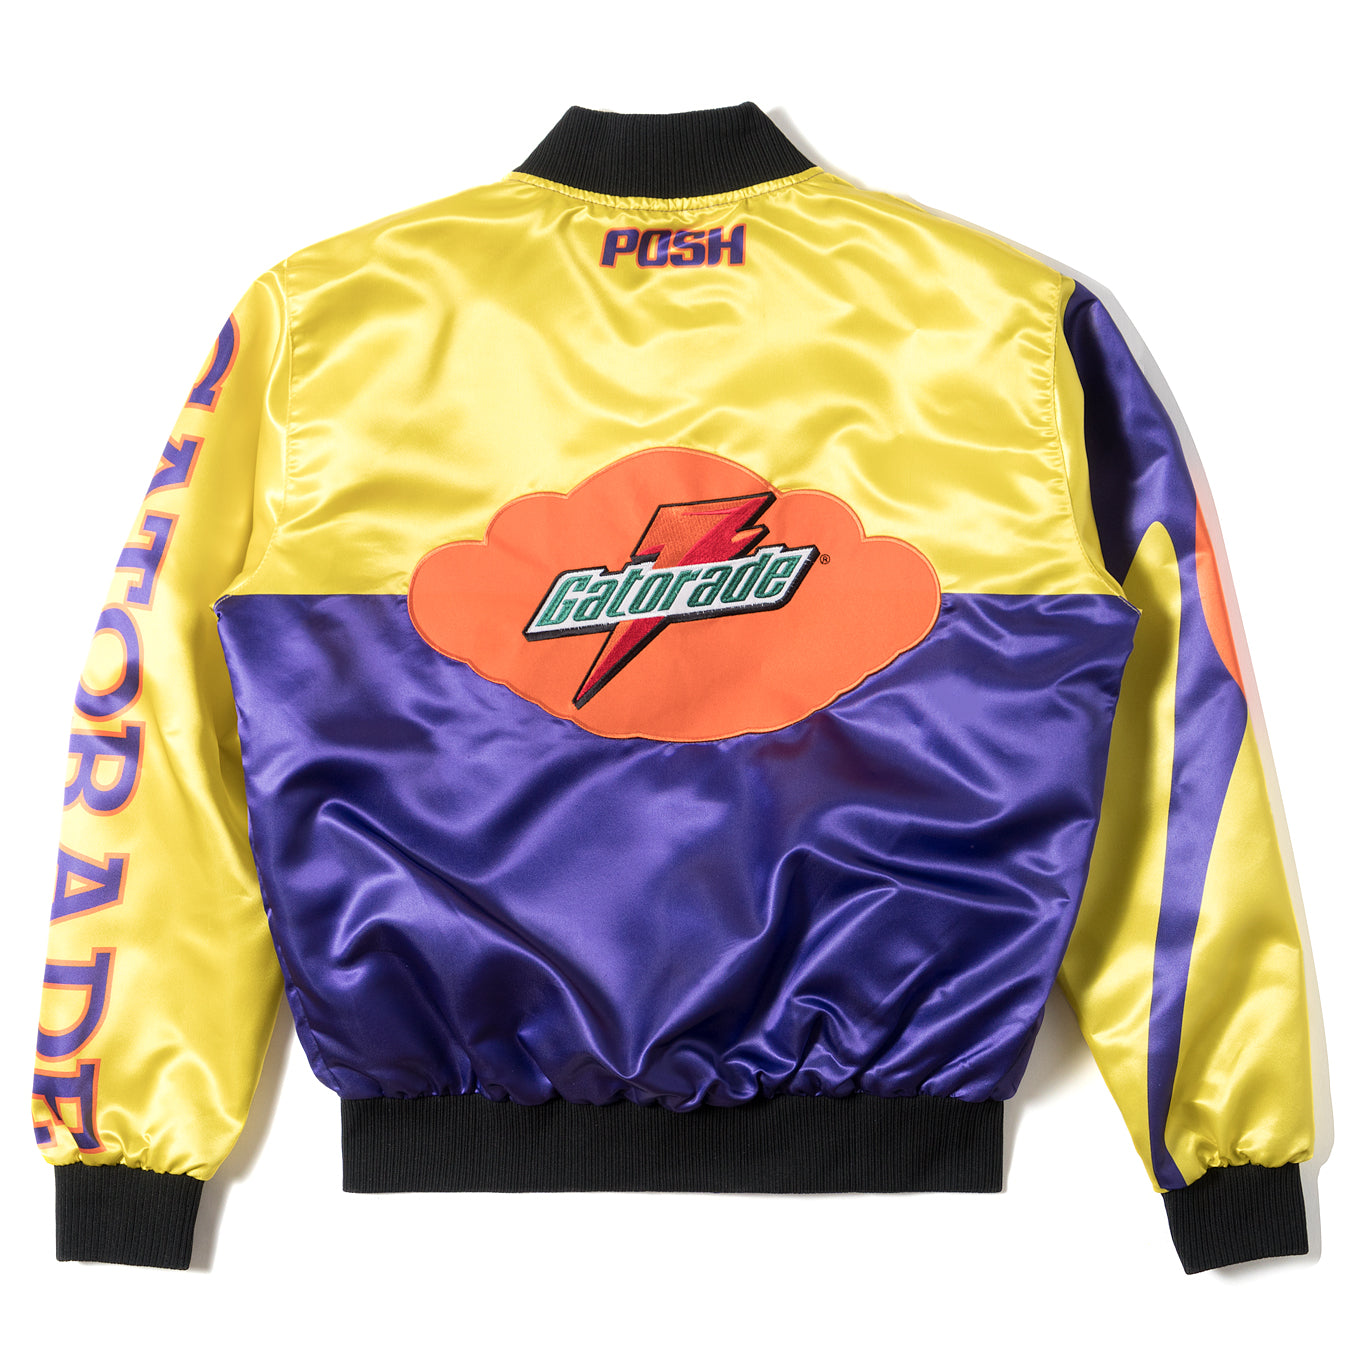 "Posh ""GatoRacing"" Two Tone Satin Racing Jacket Yellow Purple - Trends Society"